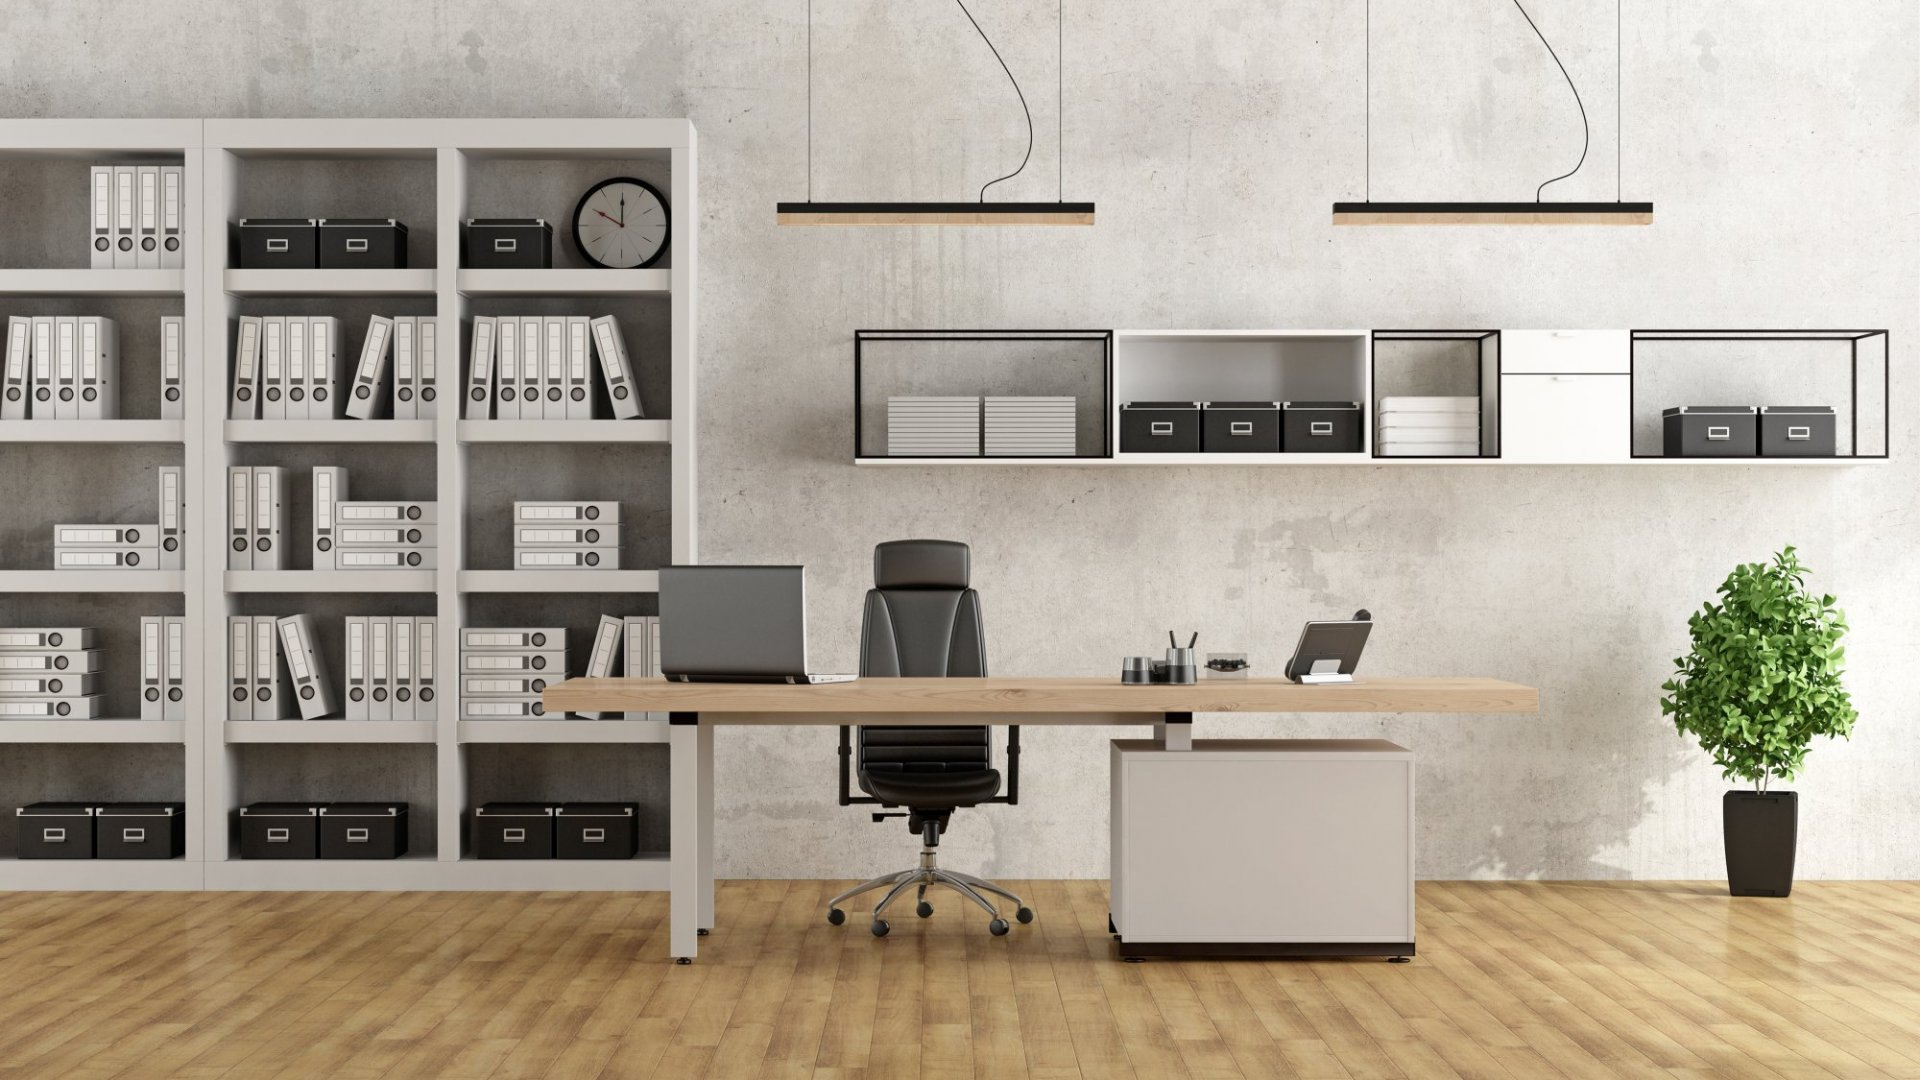 Sustainable, long-lasting furniture made from renewable materials can help improve your company, inside and out.